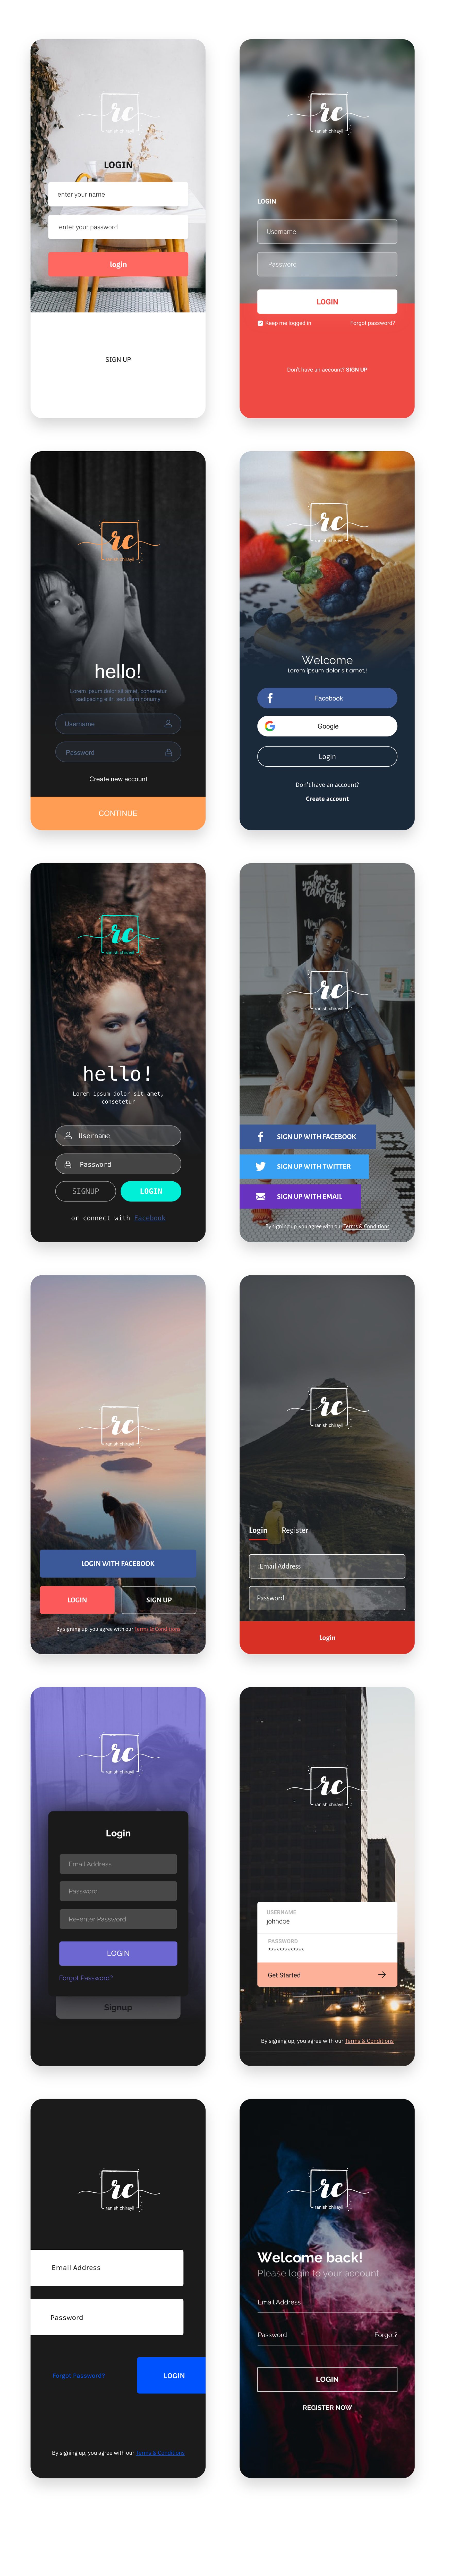 login UI KIT - Free download-Kotlin-constraint layout